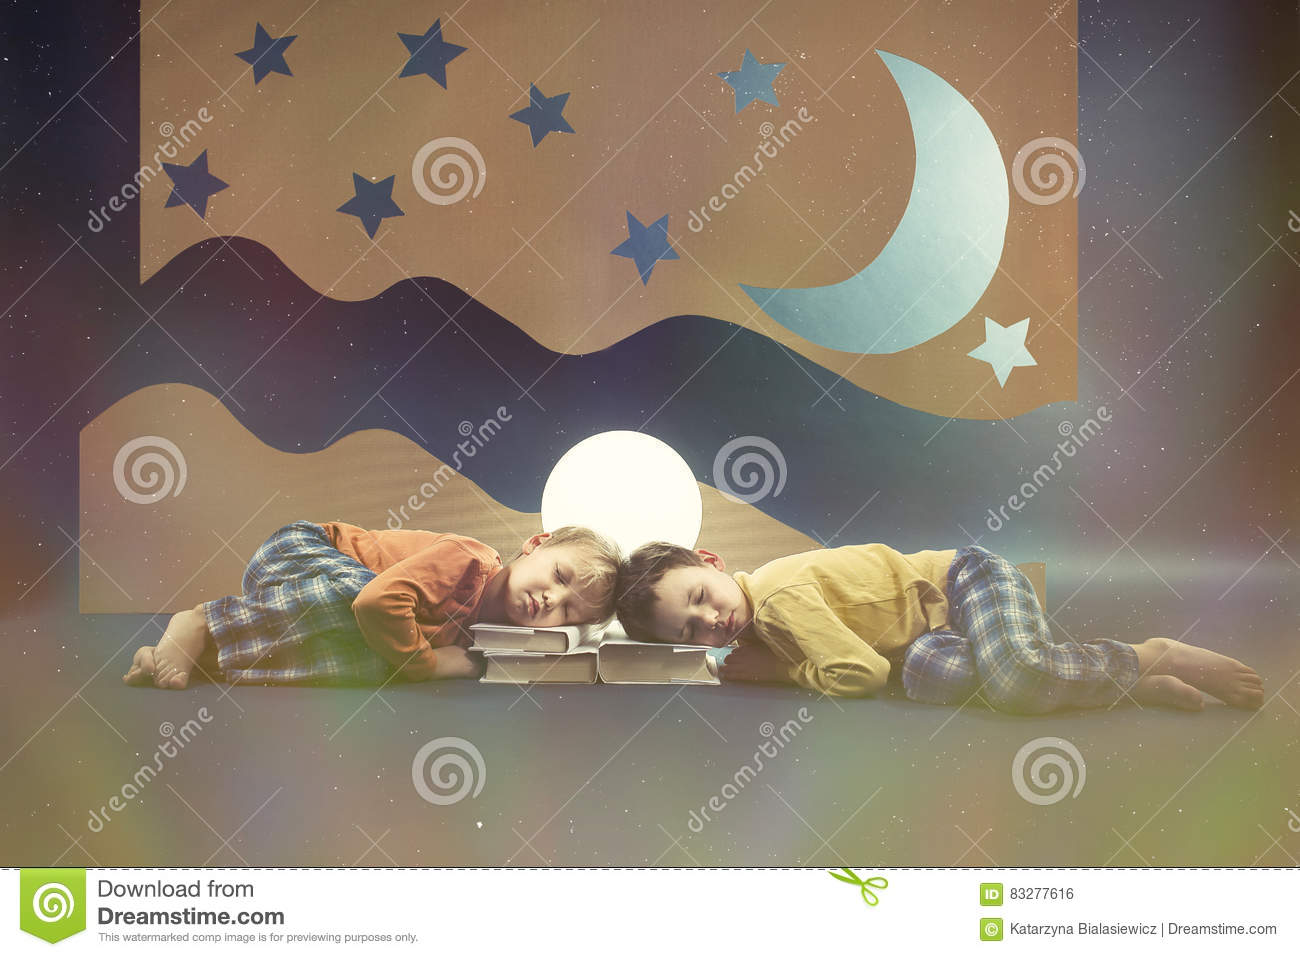 Kids at night with moon royalty free stock photography image - Royalty Free Stock Photo Children Dreaming Moon Night